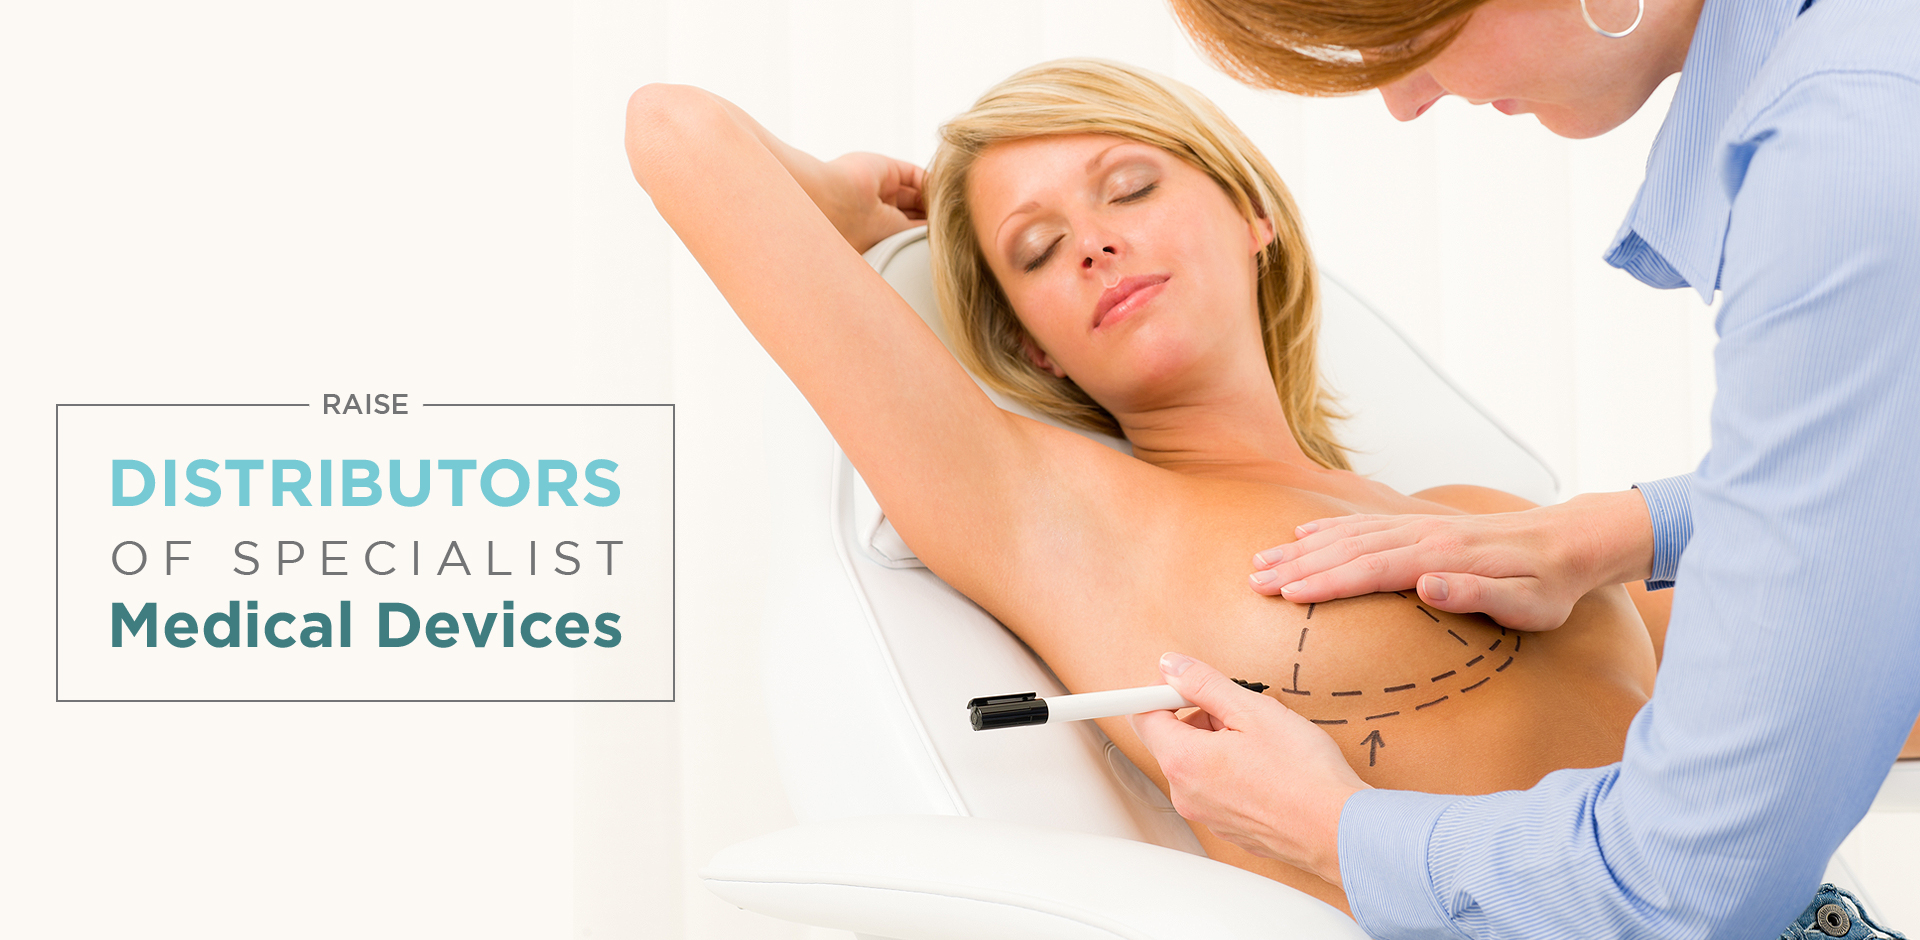 Distributors of specialist Medical Devices